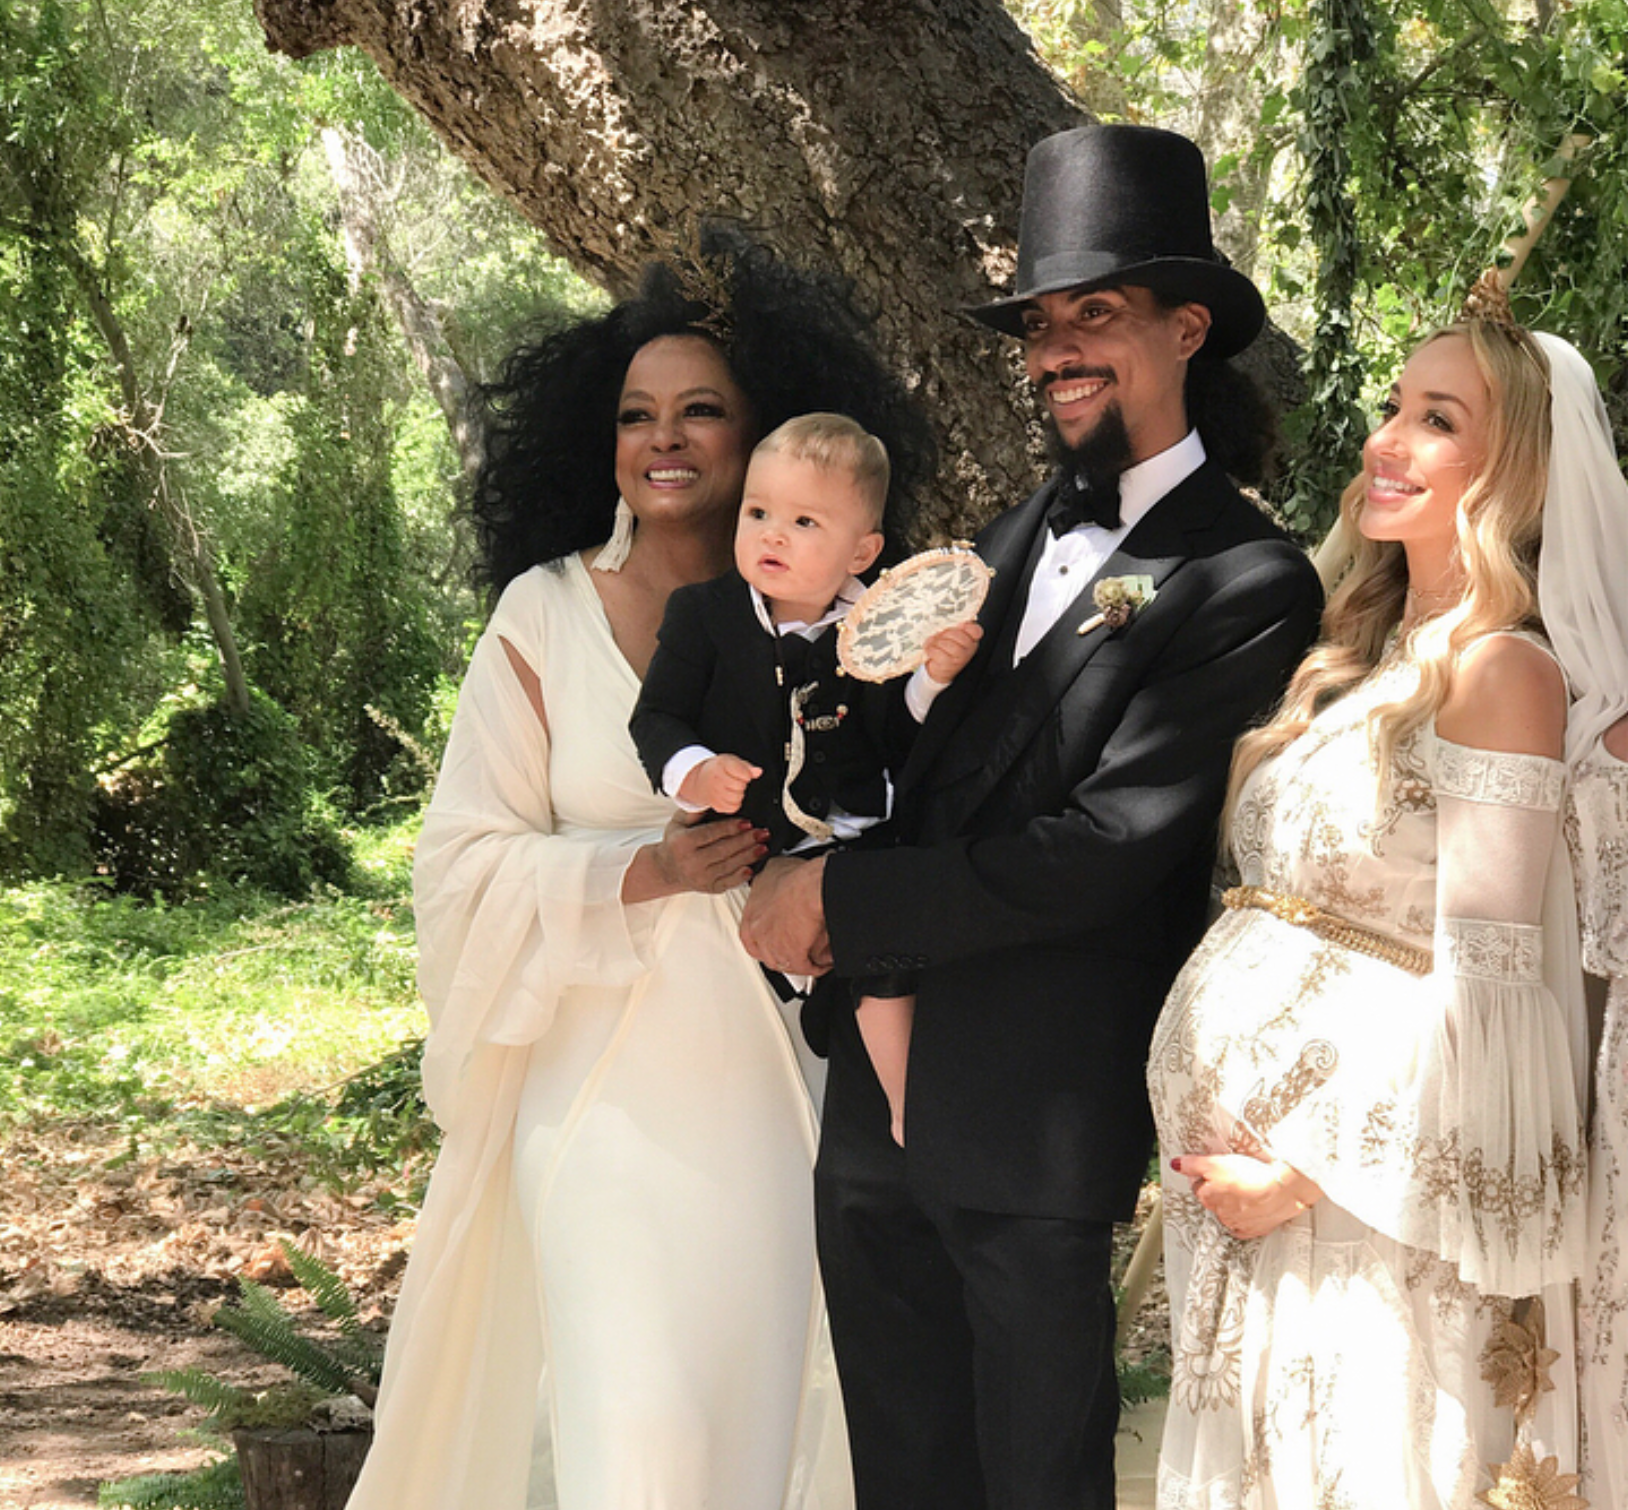 Diana Ross Son Ties The Knot In Beautiful Ceremony